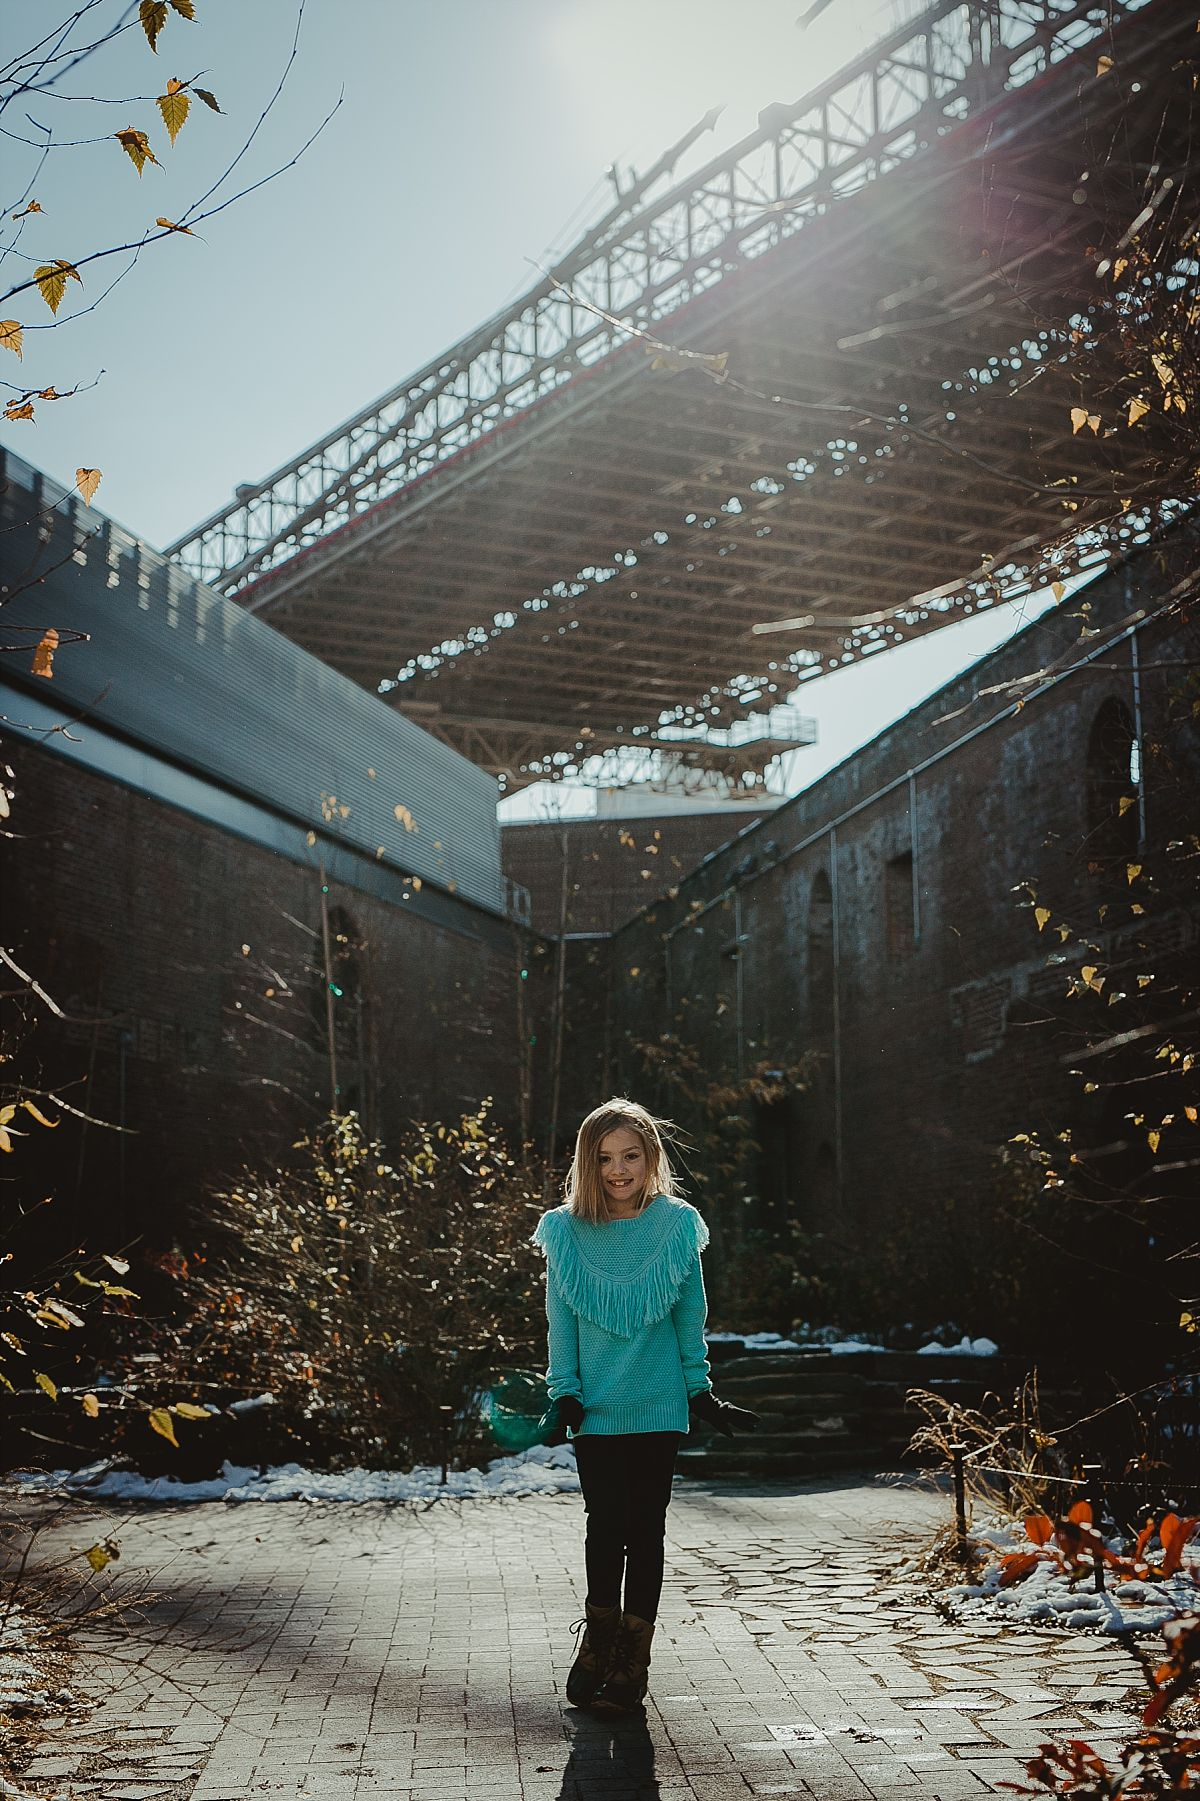 young girl poses in front of brooklyn bridge in dumbo brooklyn. capturing candid family photos is family photographer krystil mcdowall